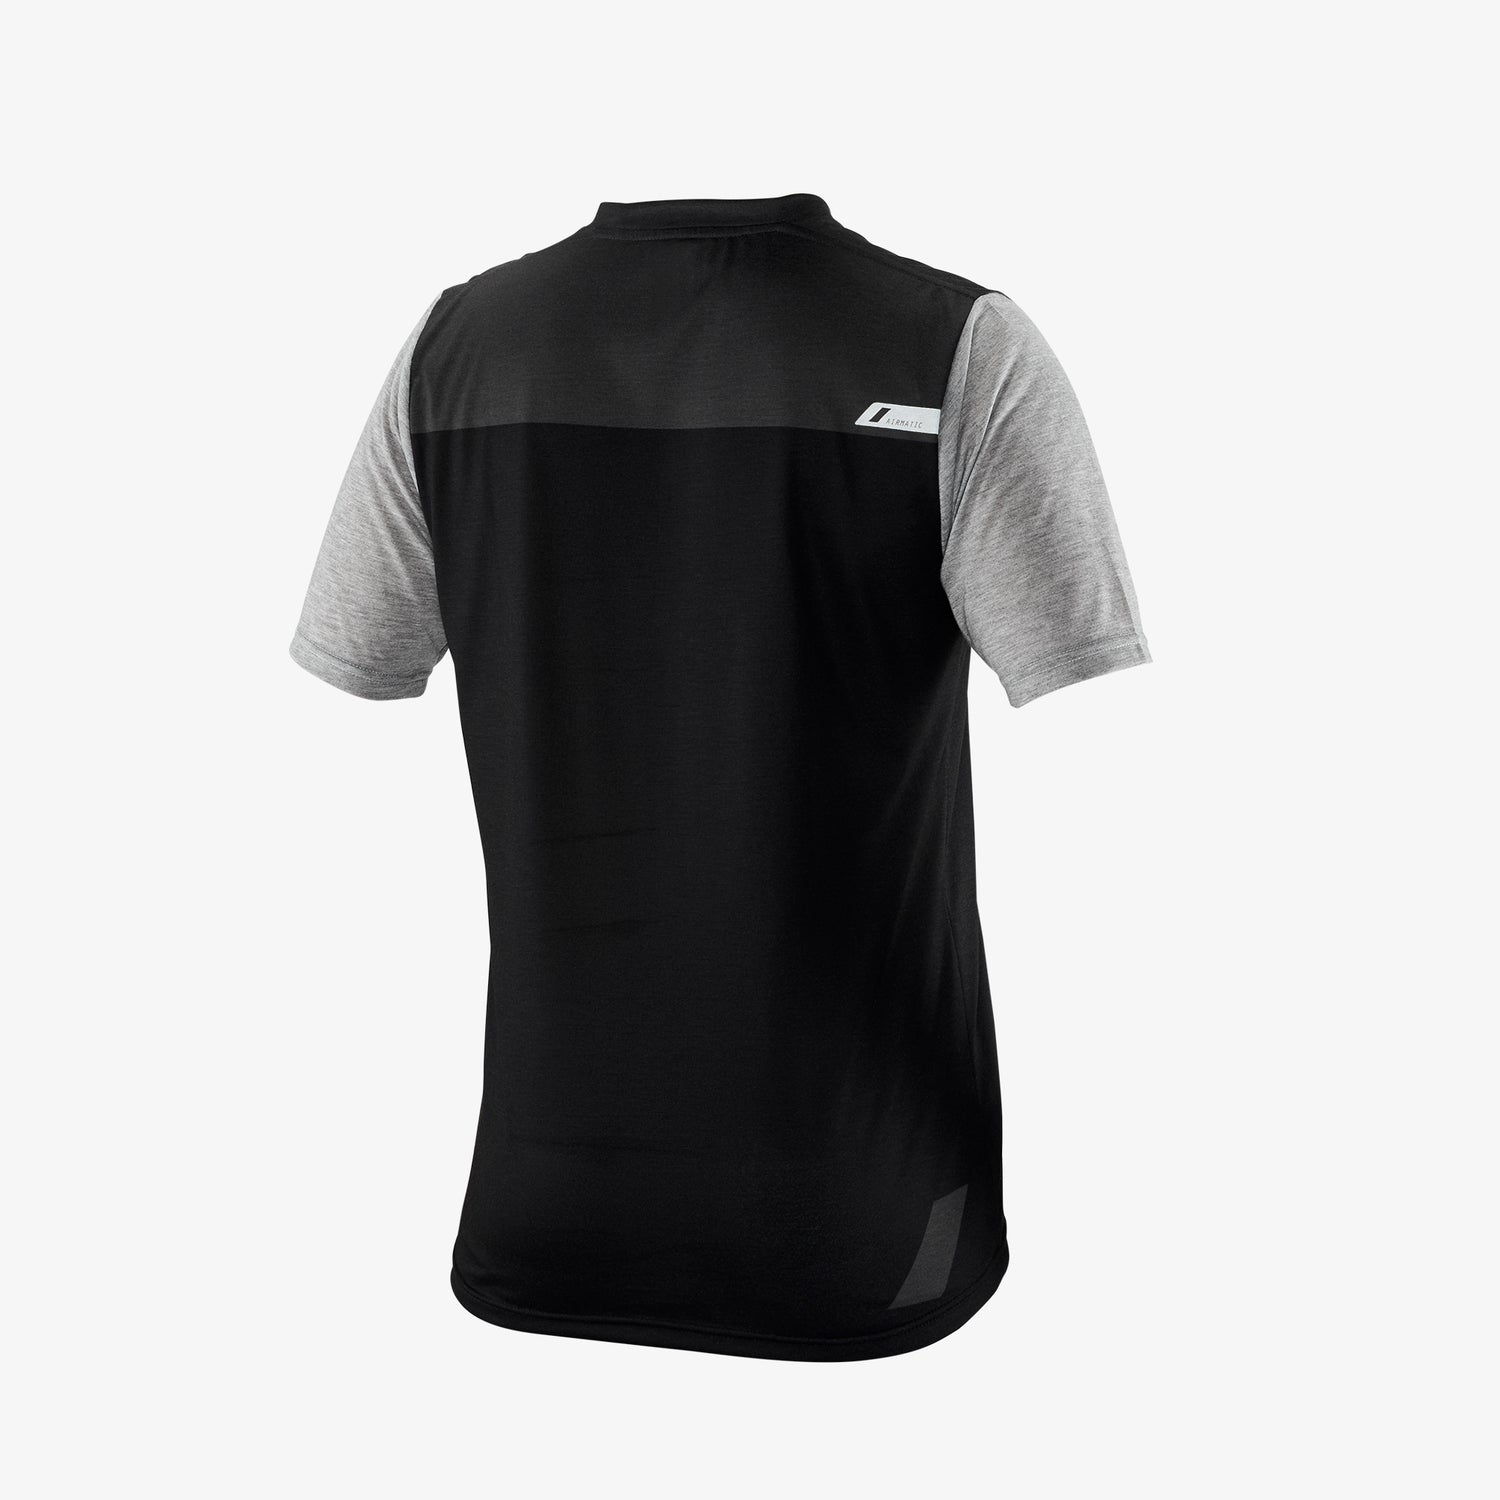 AIRMATIC Jersey - Black/Charcoal